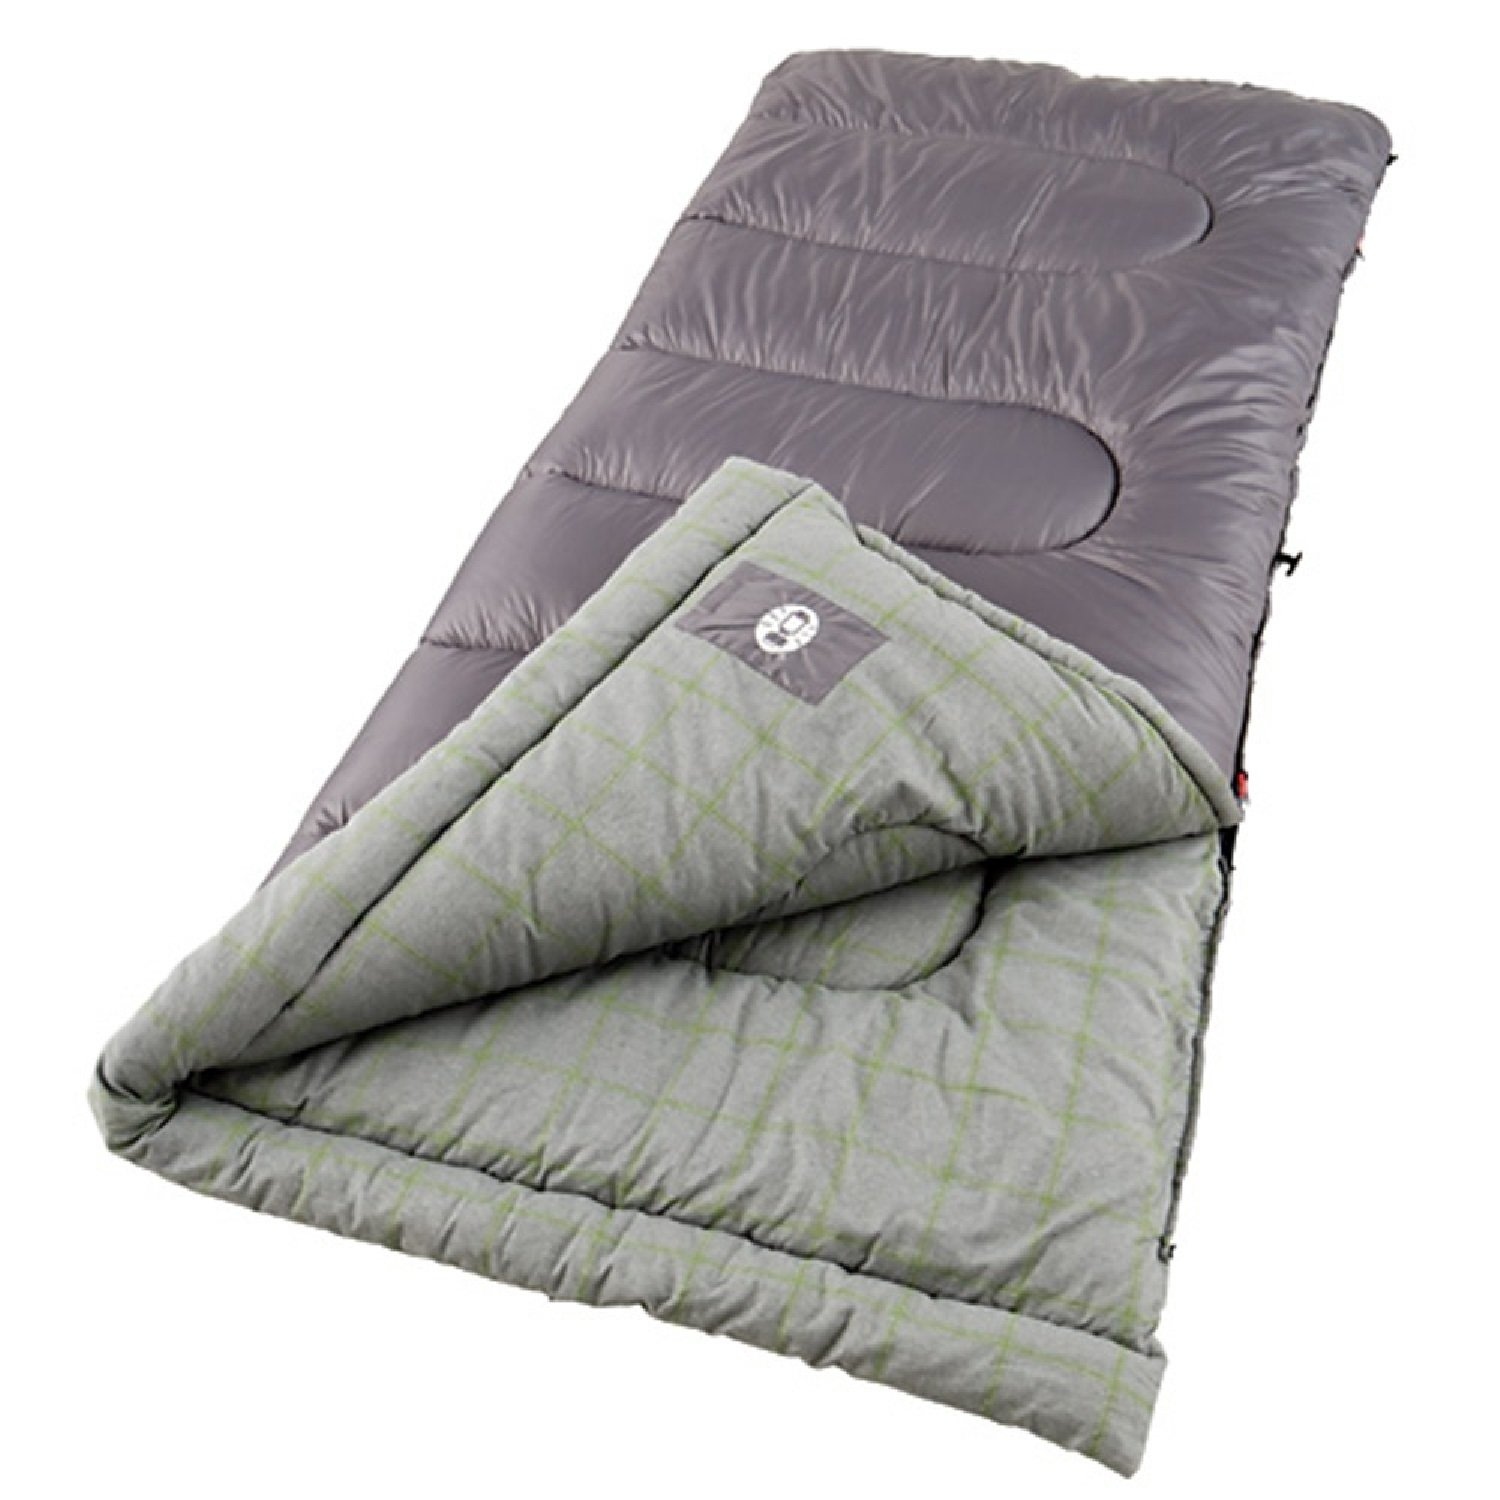 An image of Coleman Lassen 2000004447 20 Degree Cotton Flannel Sleeping Bag